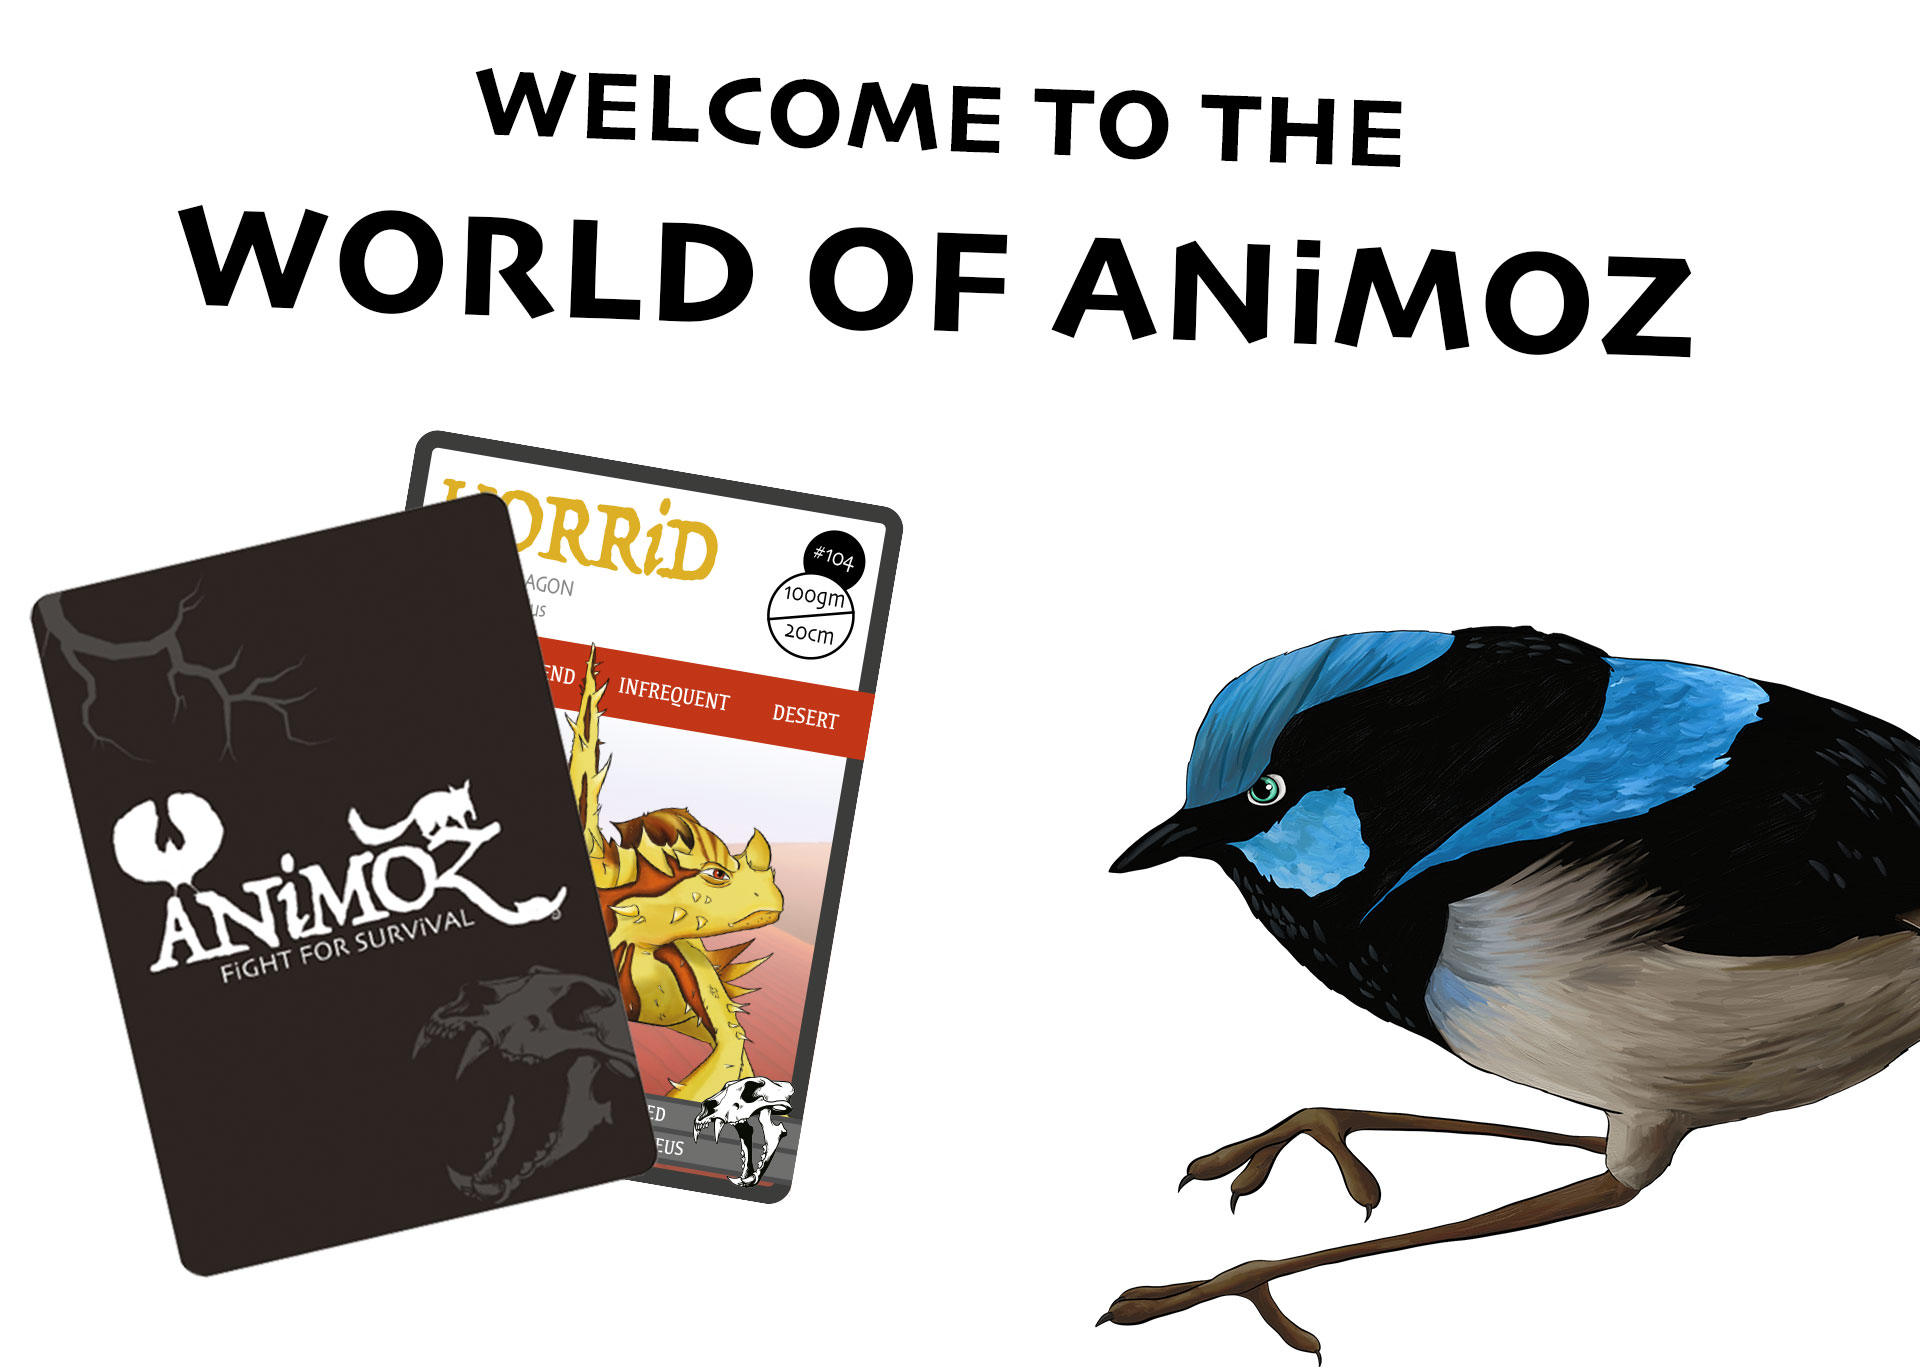 ANiMOZ - Fight for Survival ABOUT page - About ANiMOZ - collectible card game of Australian animals - What is ANiMOZ card game - Banner image 1